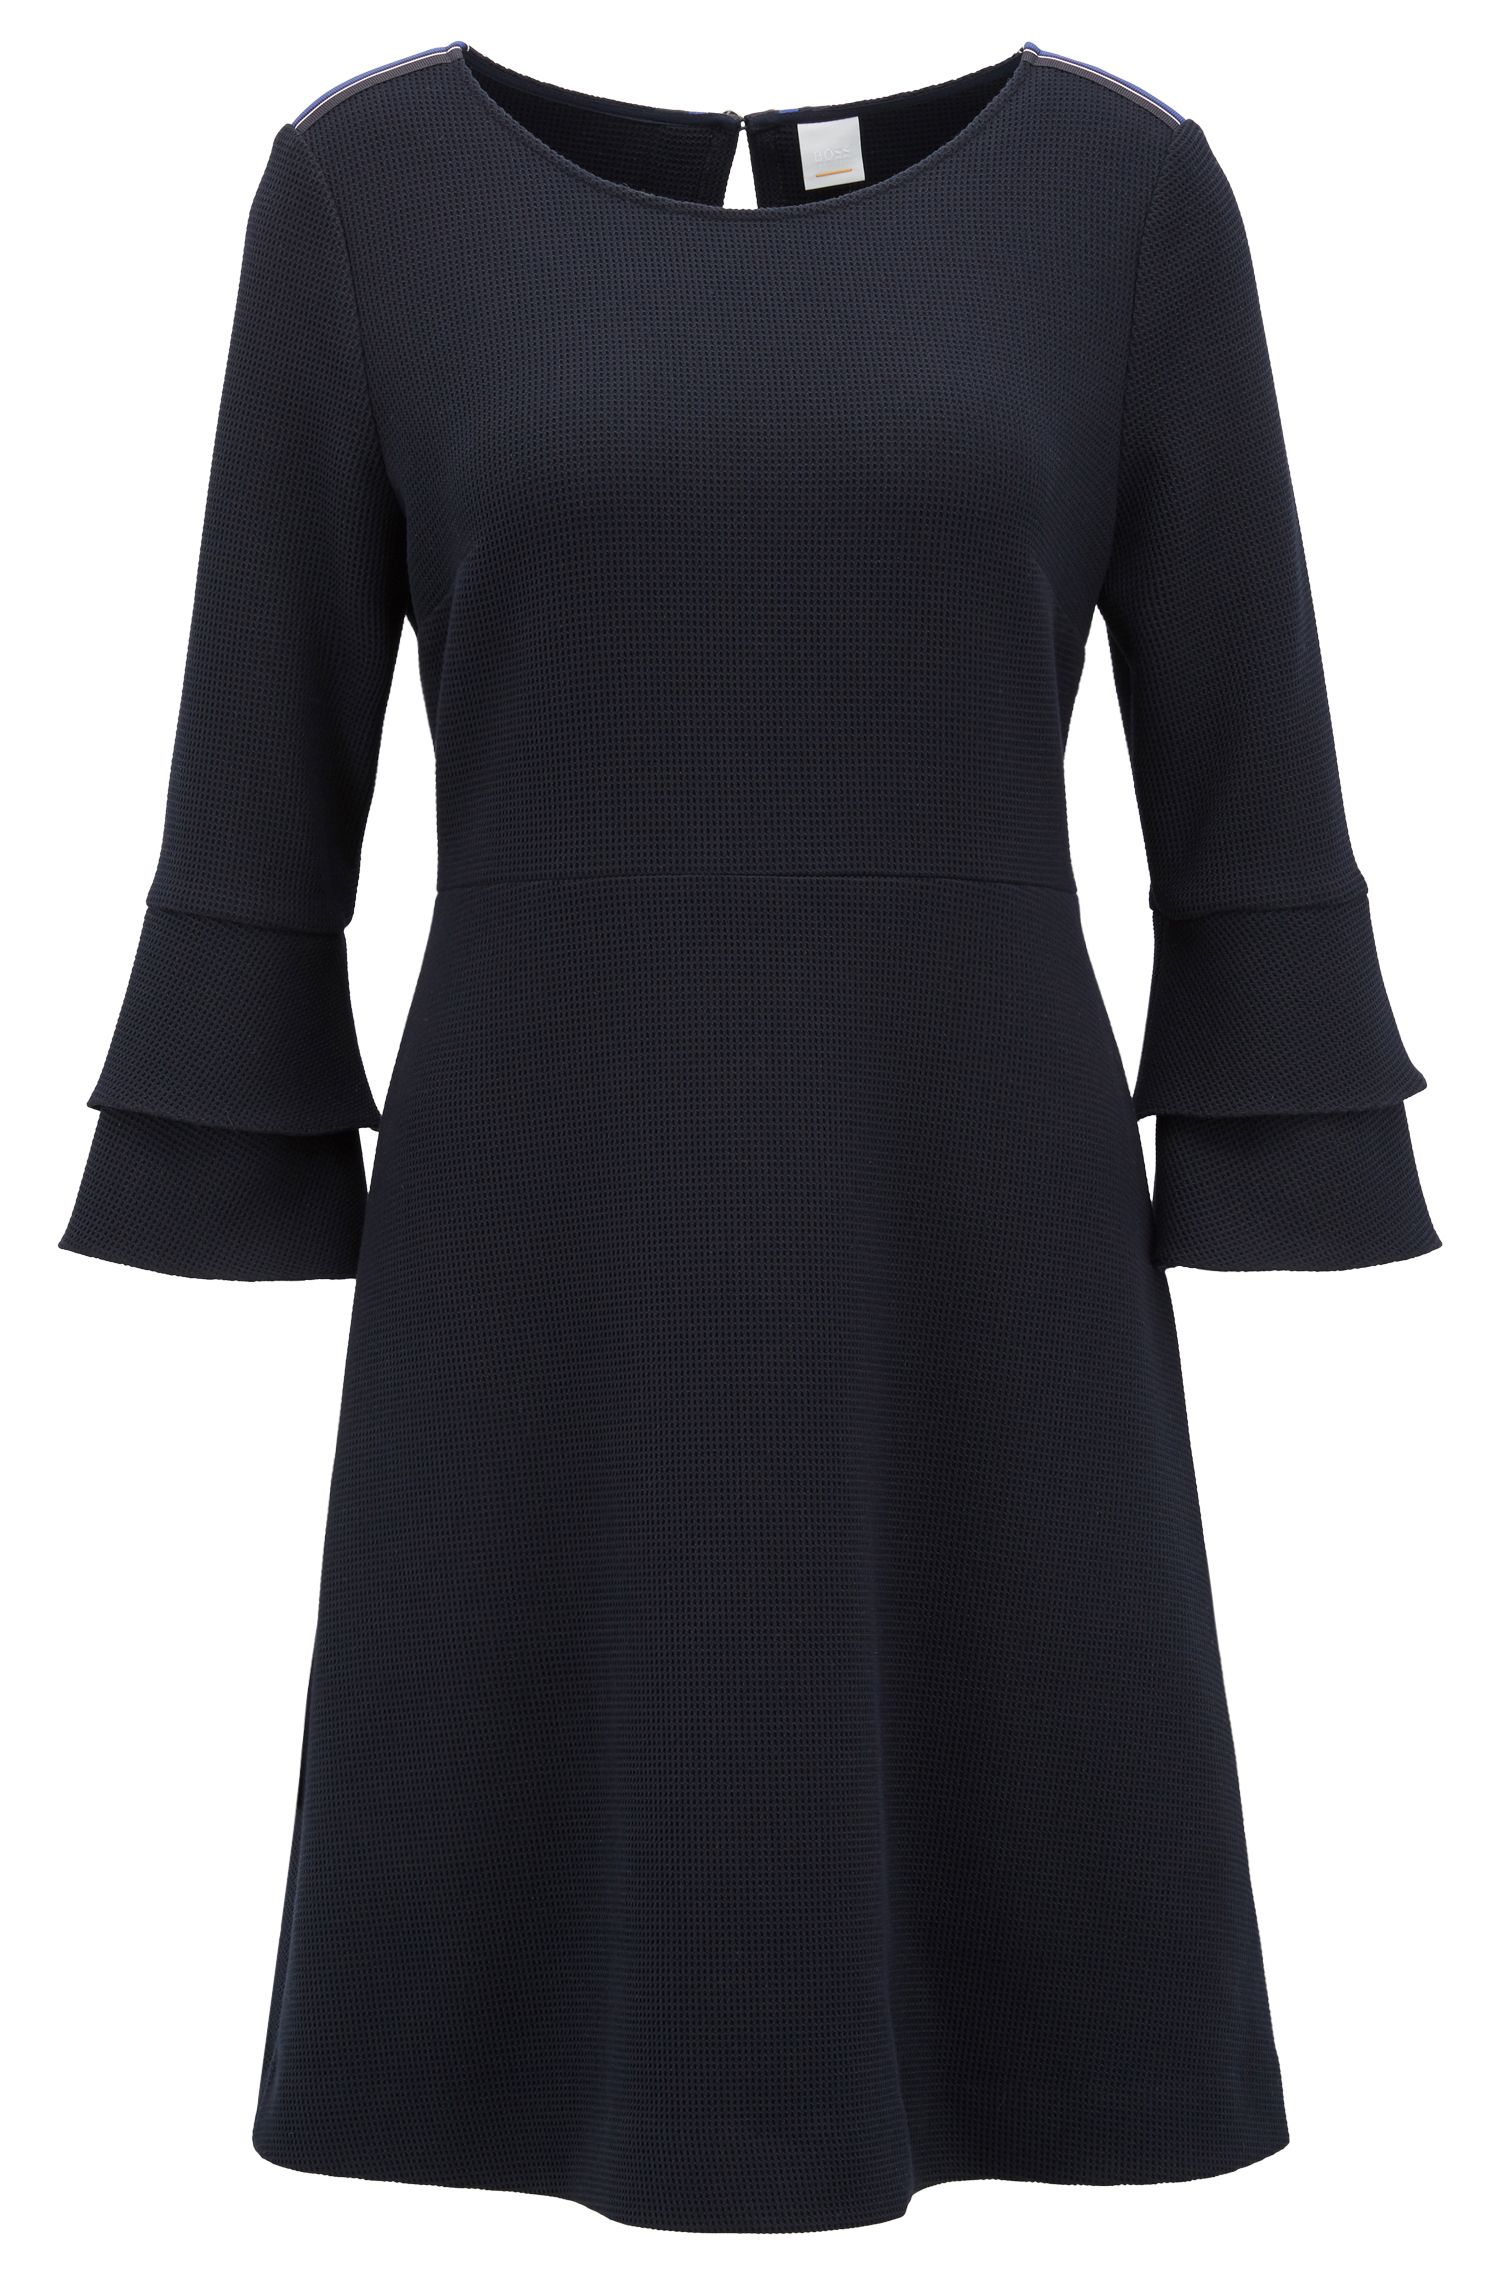 Bell-sleeve dress in structured stretch fabric, Dark Blue